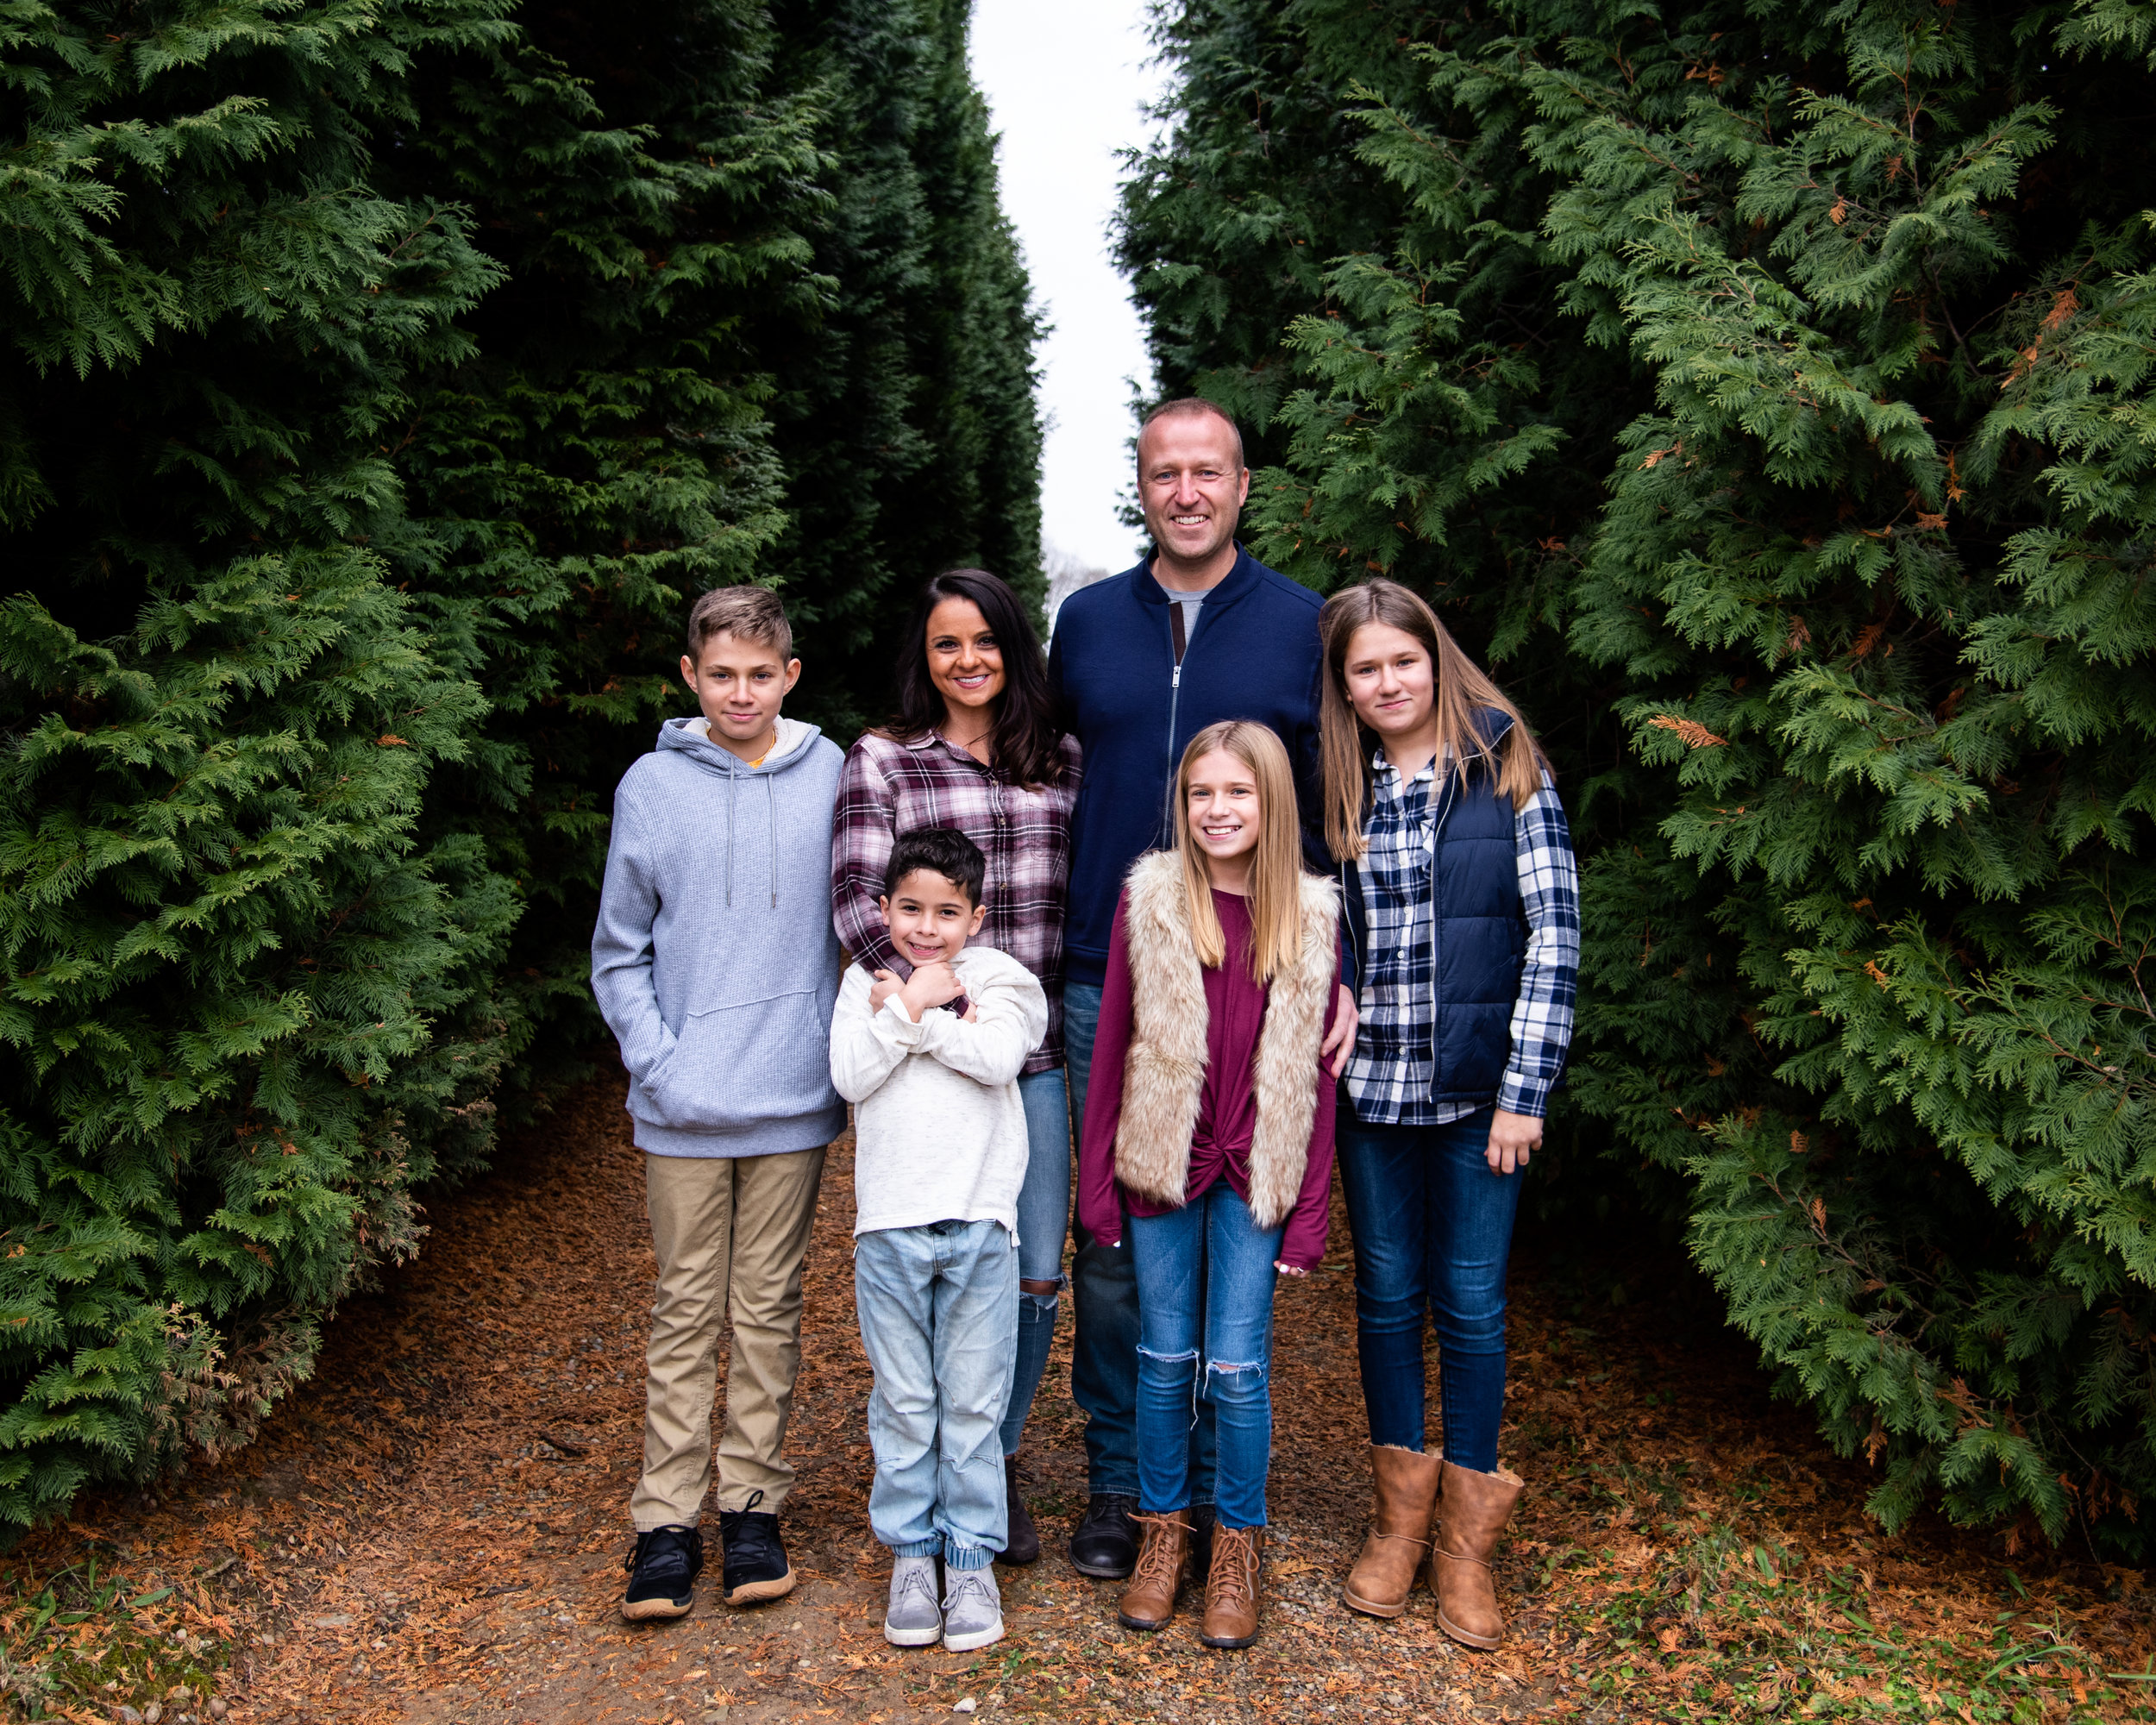 Kyla Jo Photography // Muncie, Indiana Photographer // Whitetail Tree Farm Christmas Tree Farm between Muncie Indiana and New Castle // Family Photo Session // Midwest Family Photographer